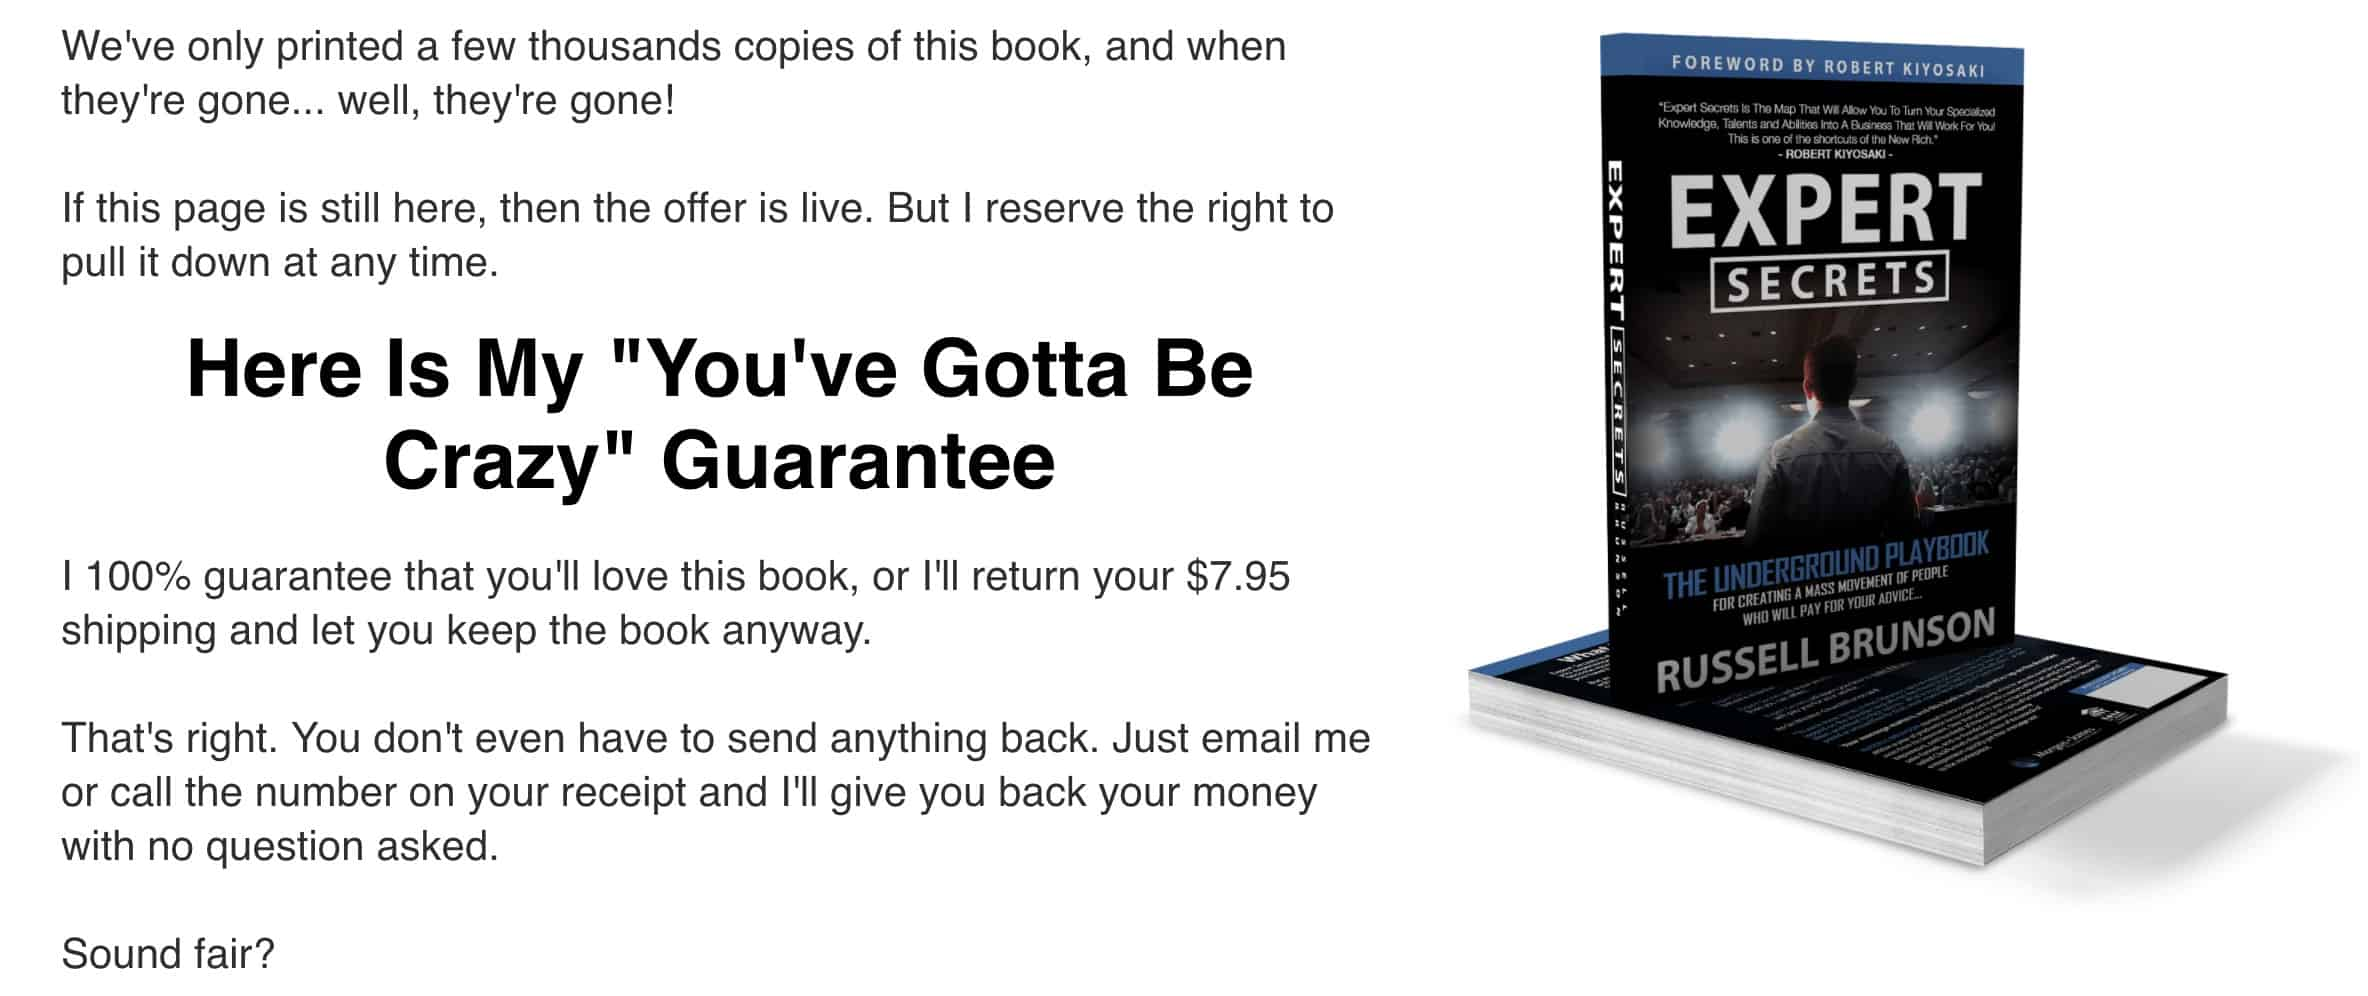 Expert Secrets Money Back Guarantee